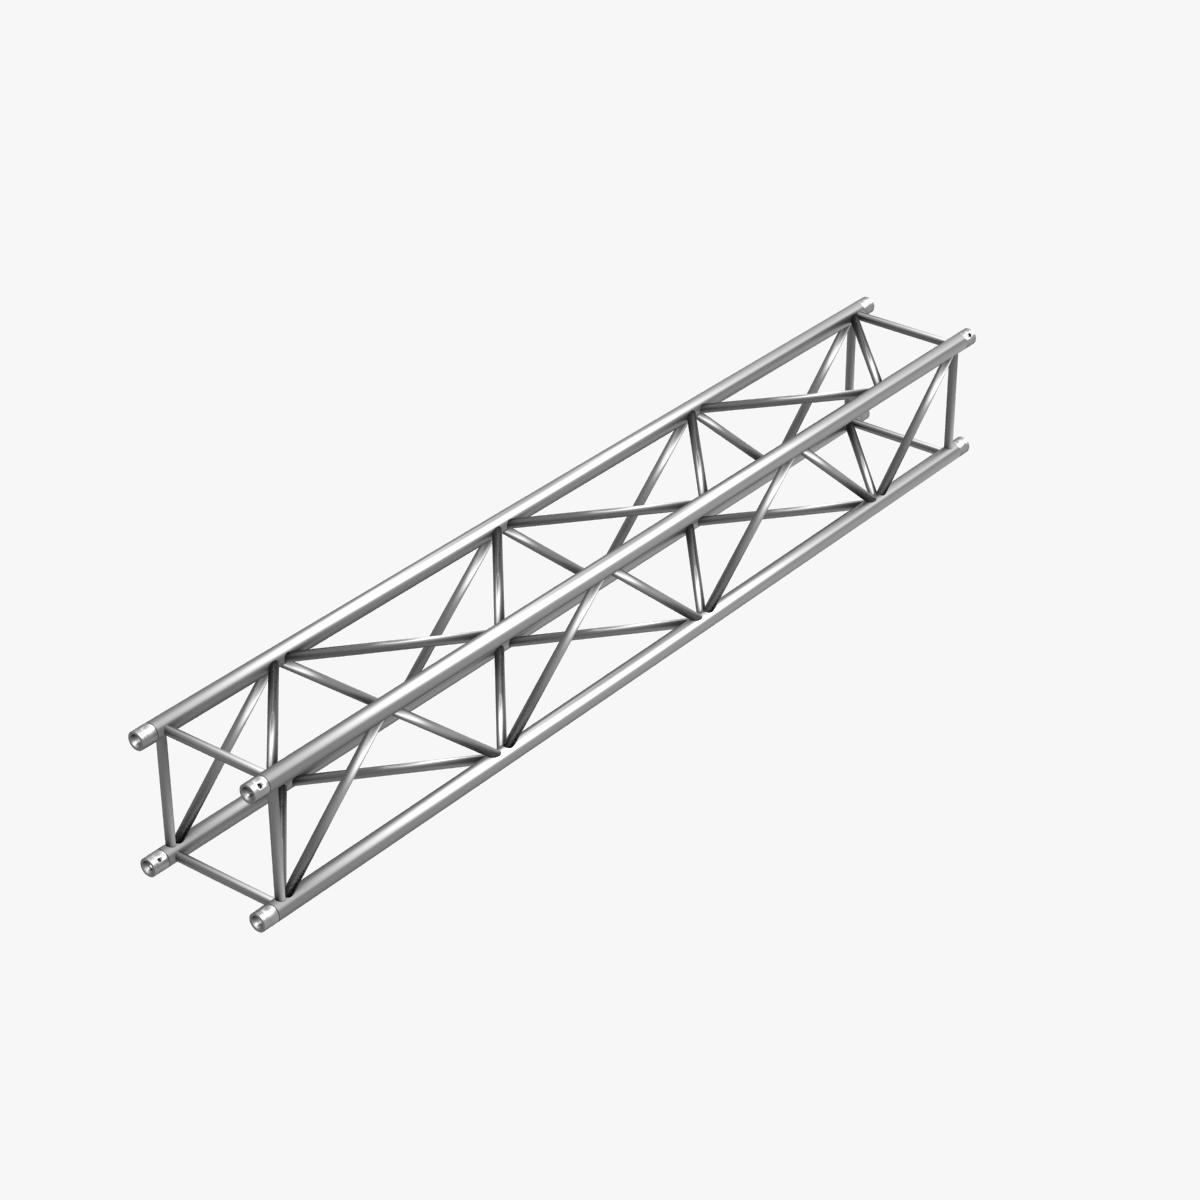 big square truss (collection 10 modular pieces) 3d model 3ds dxf fbx c4d dae  268552